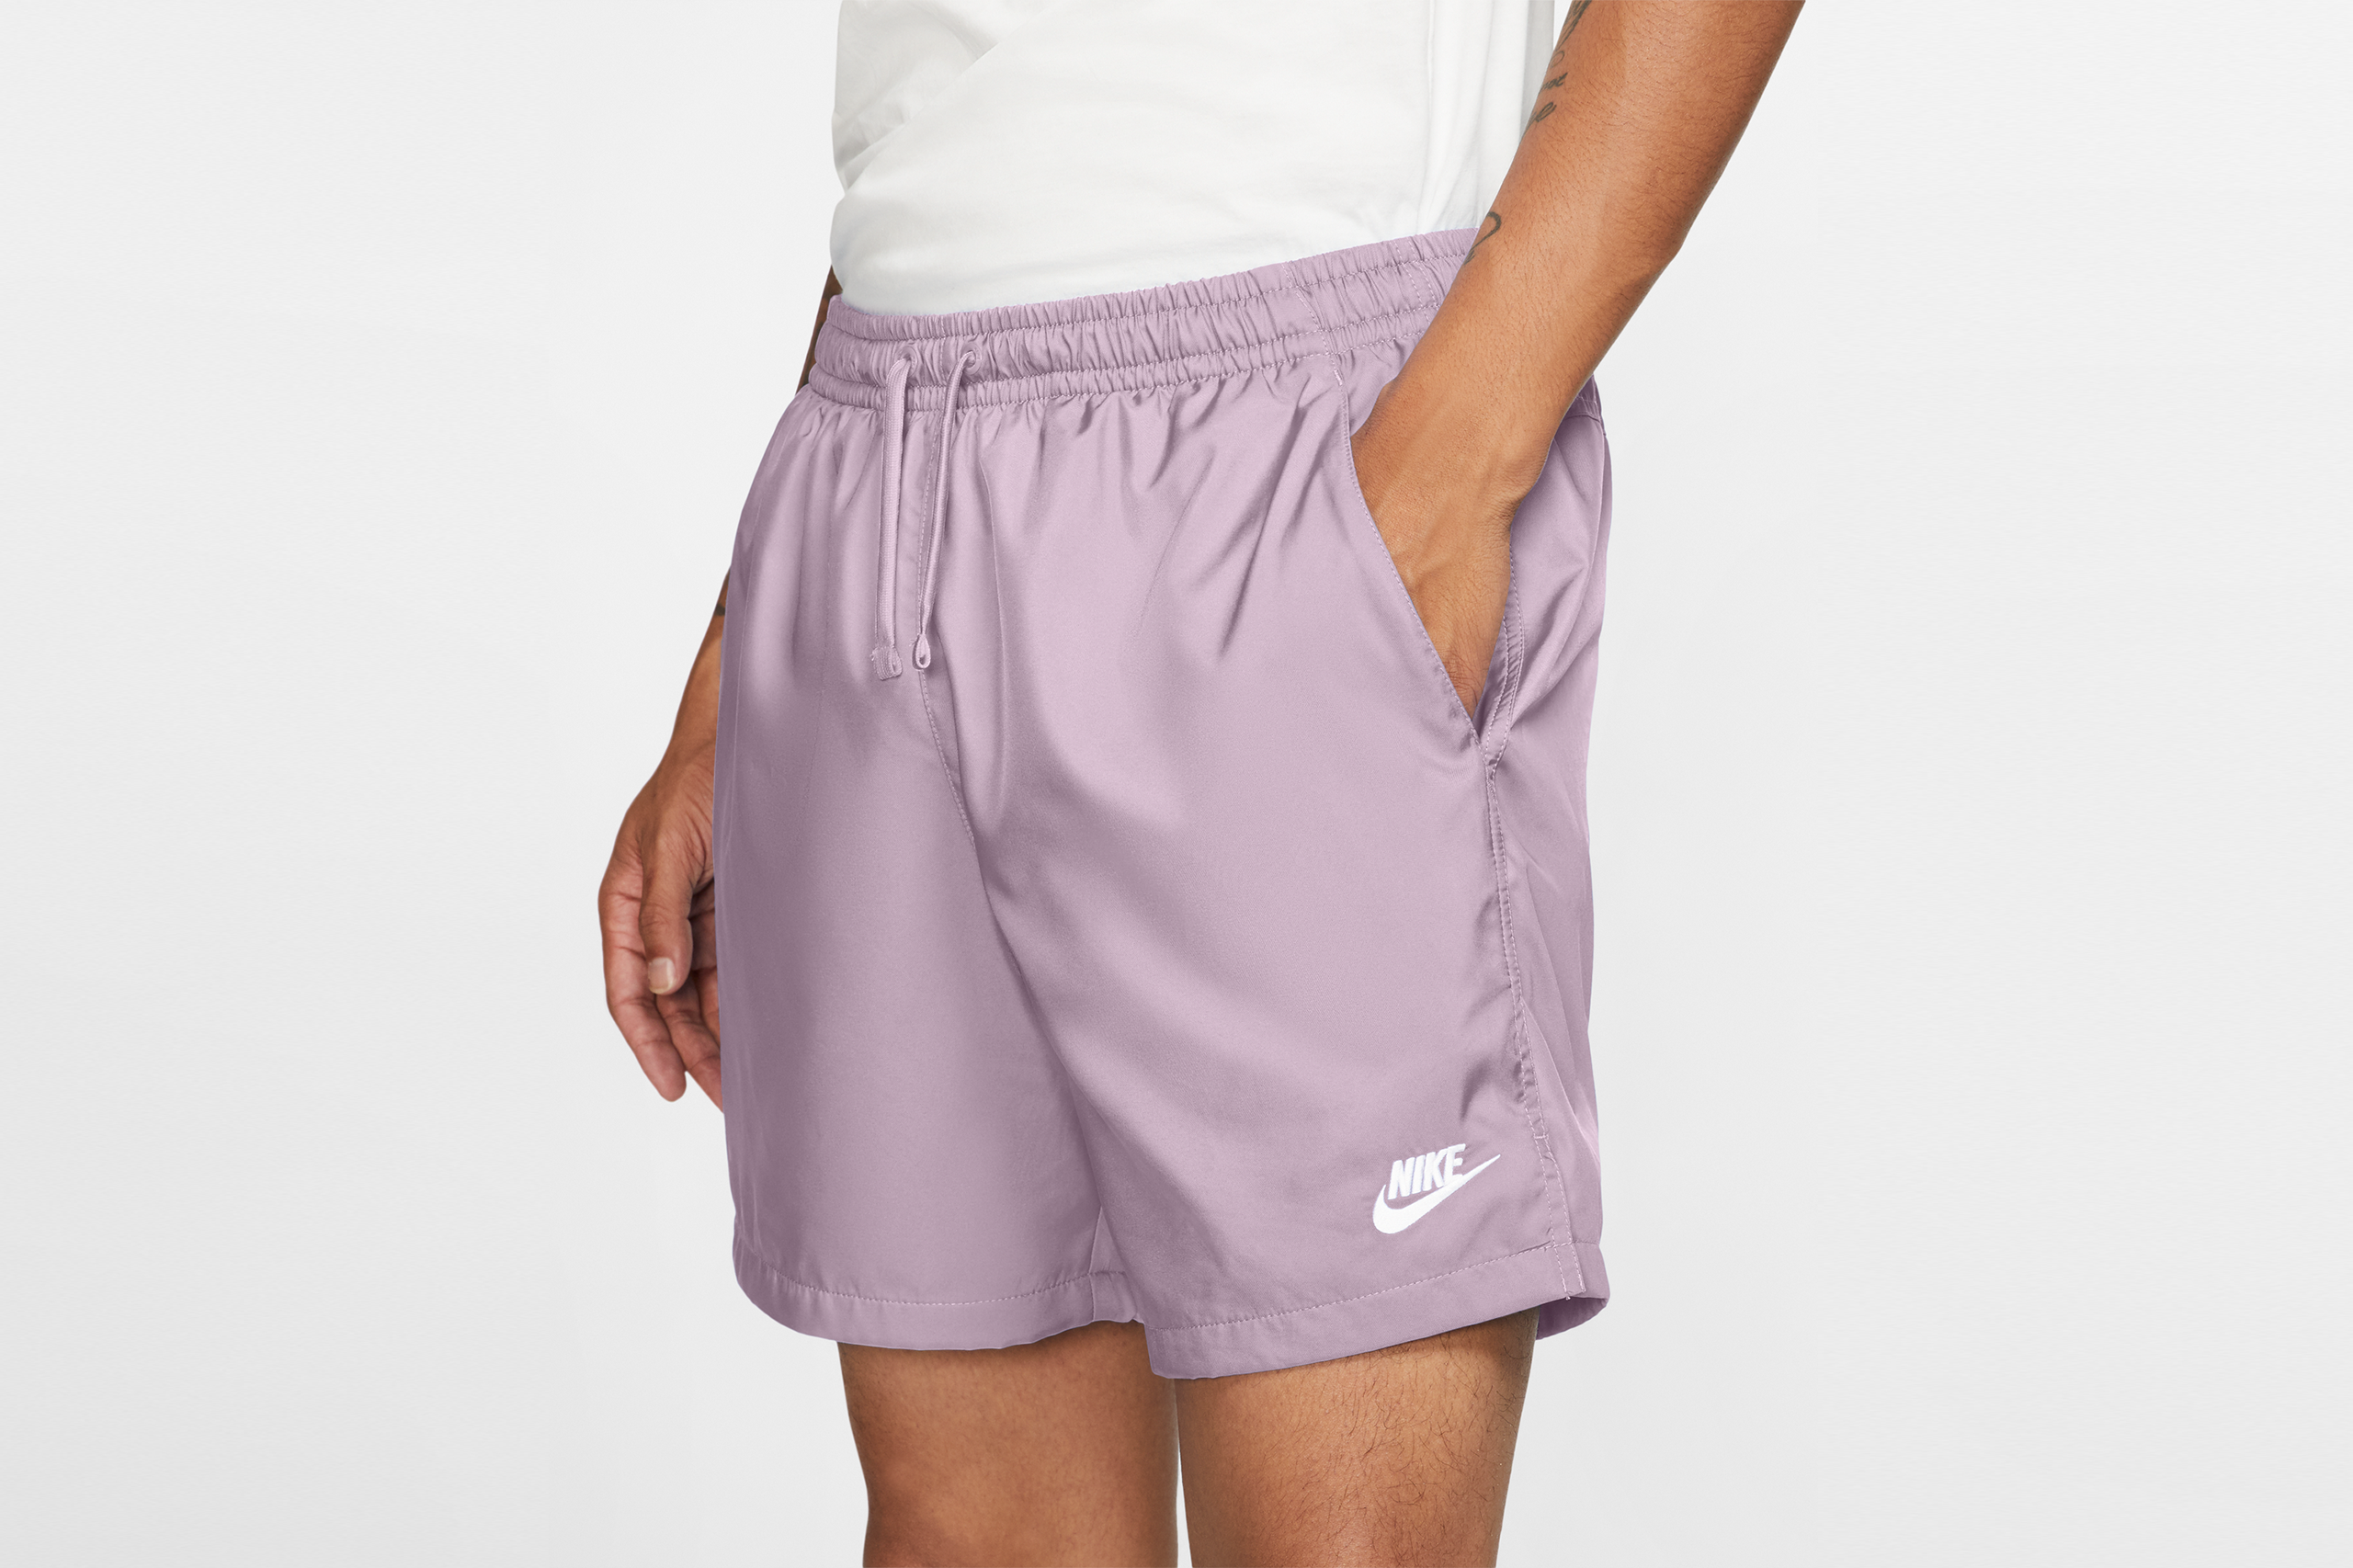 Nike NSW Woven Shorts Iced Lilac/White